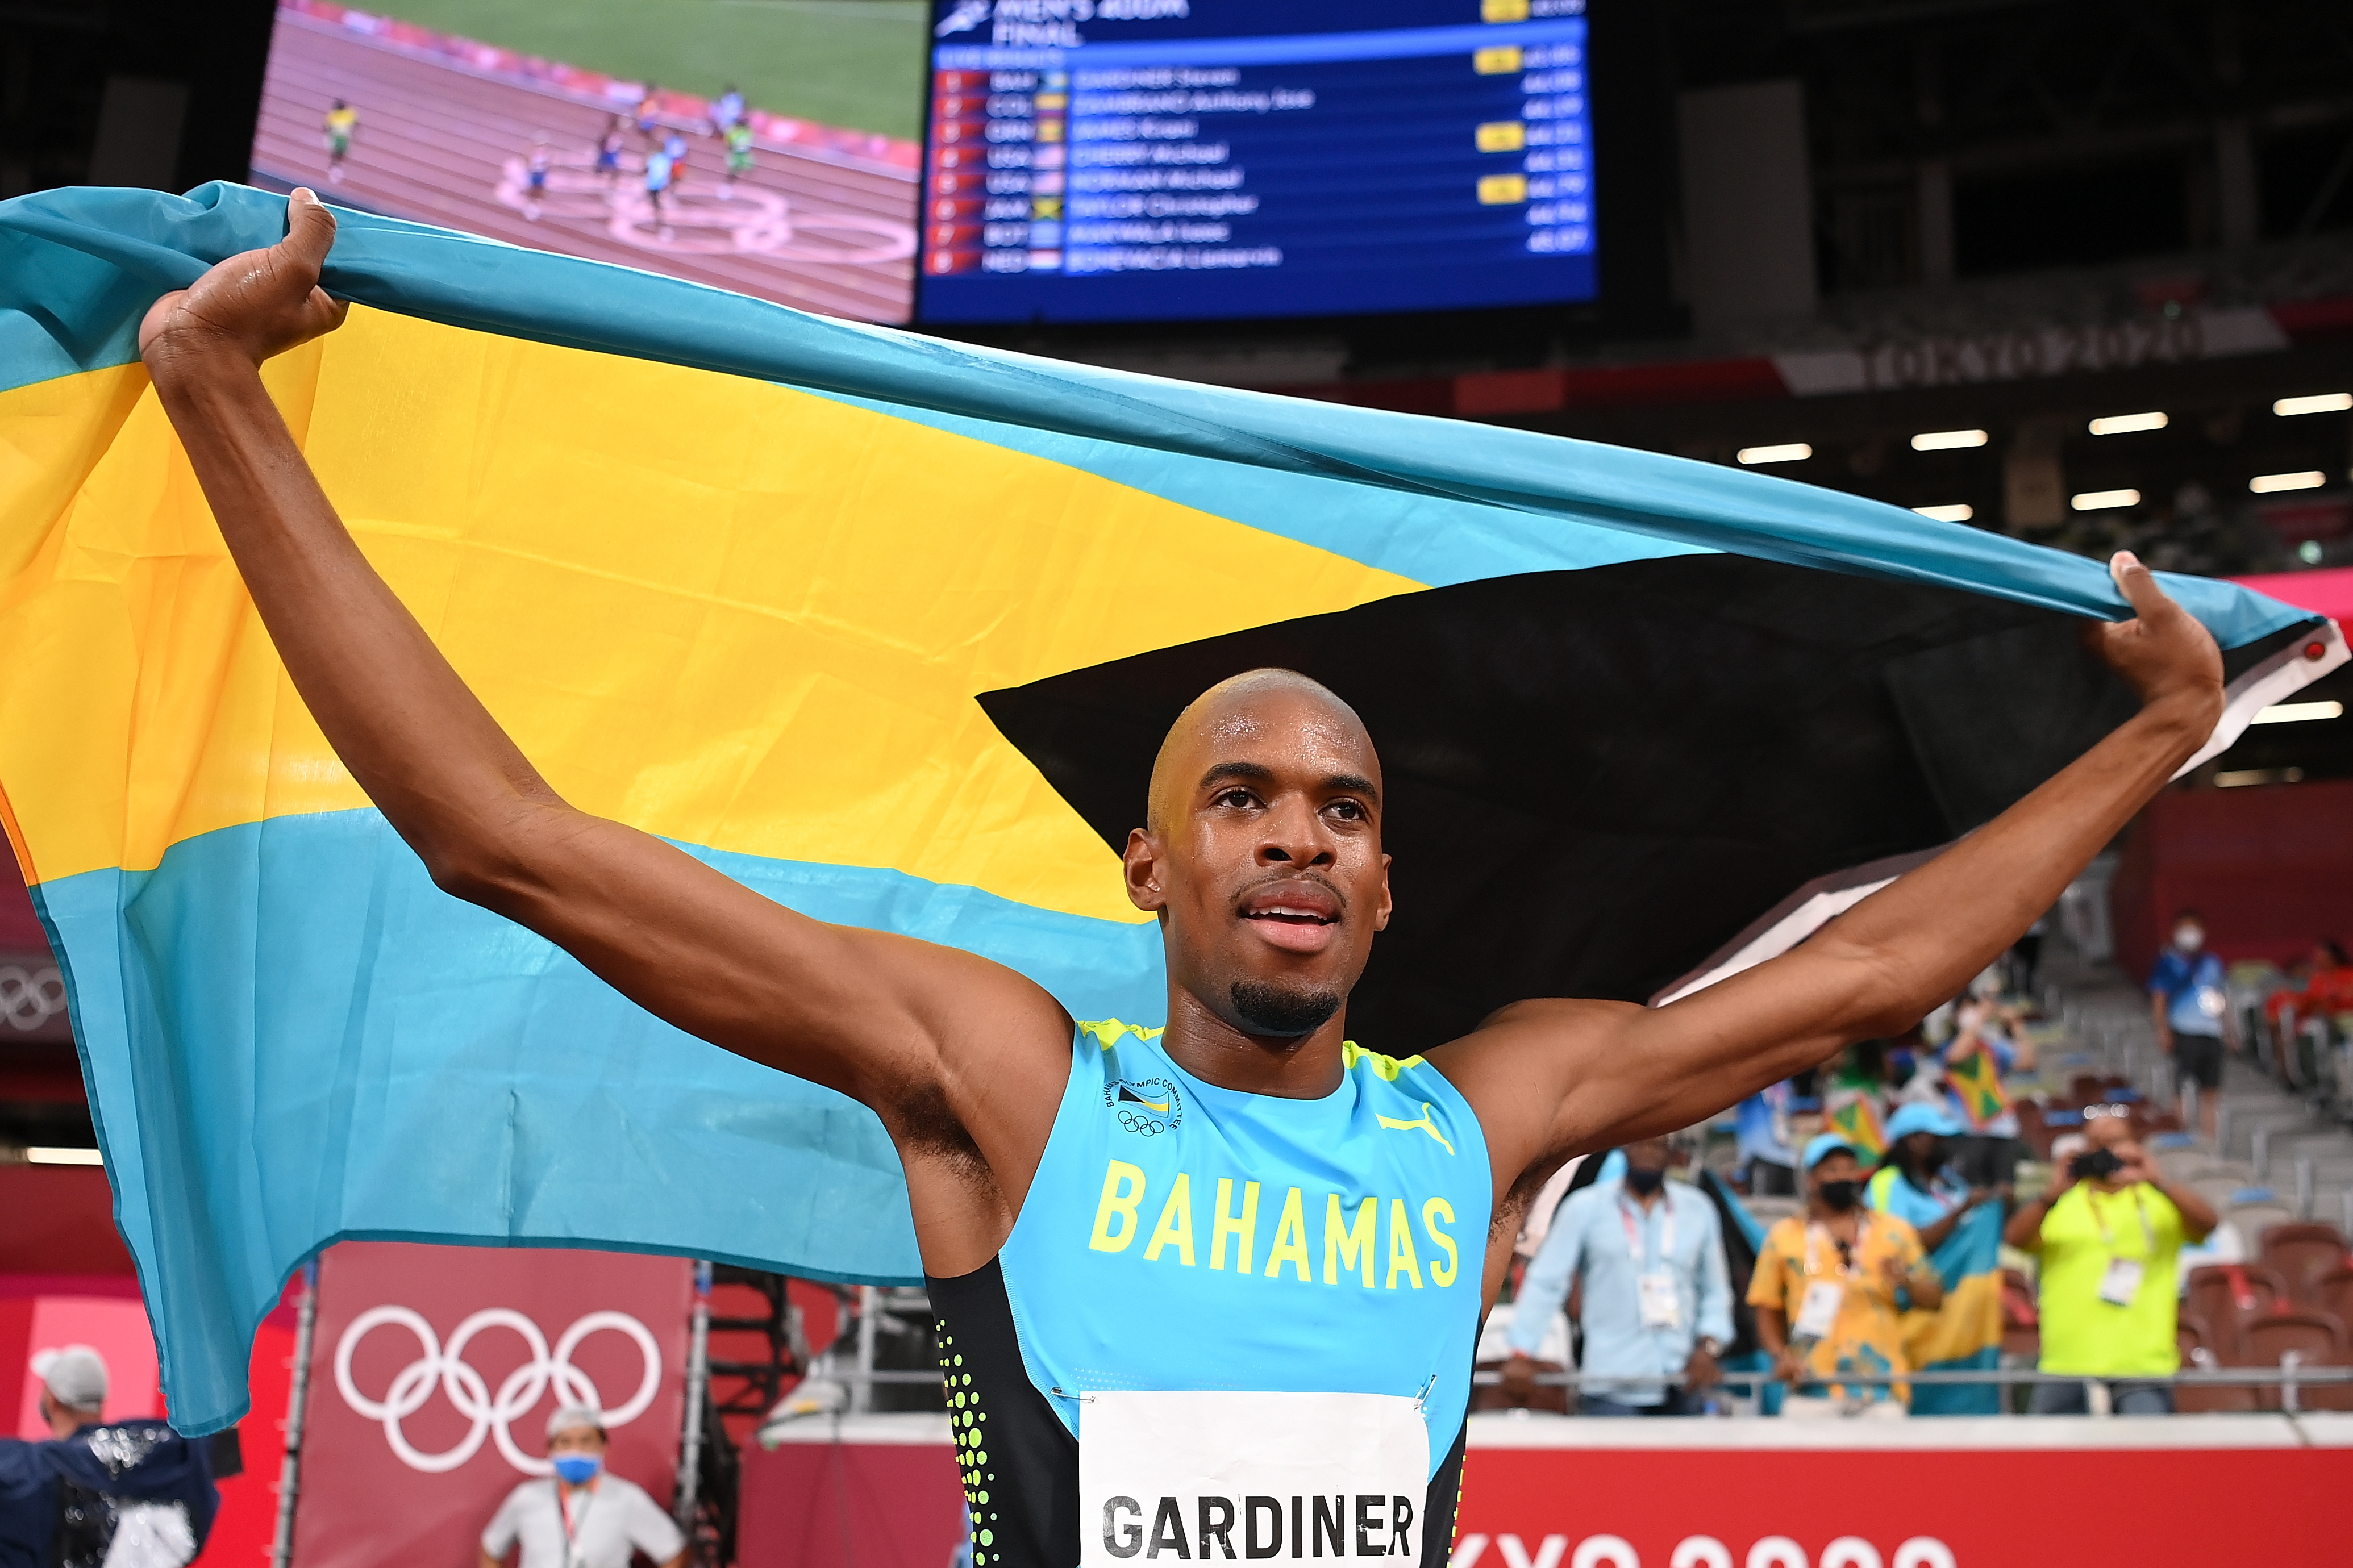 Steven Gardiner of Team Bahamas celebrates after winning the gold medal in the Men's 400m Final on day thirteen of the Tokyo 2020 Olympic Games at Olympic Stadium on August 05, 2021 in Tokyo, Japan.